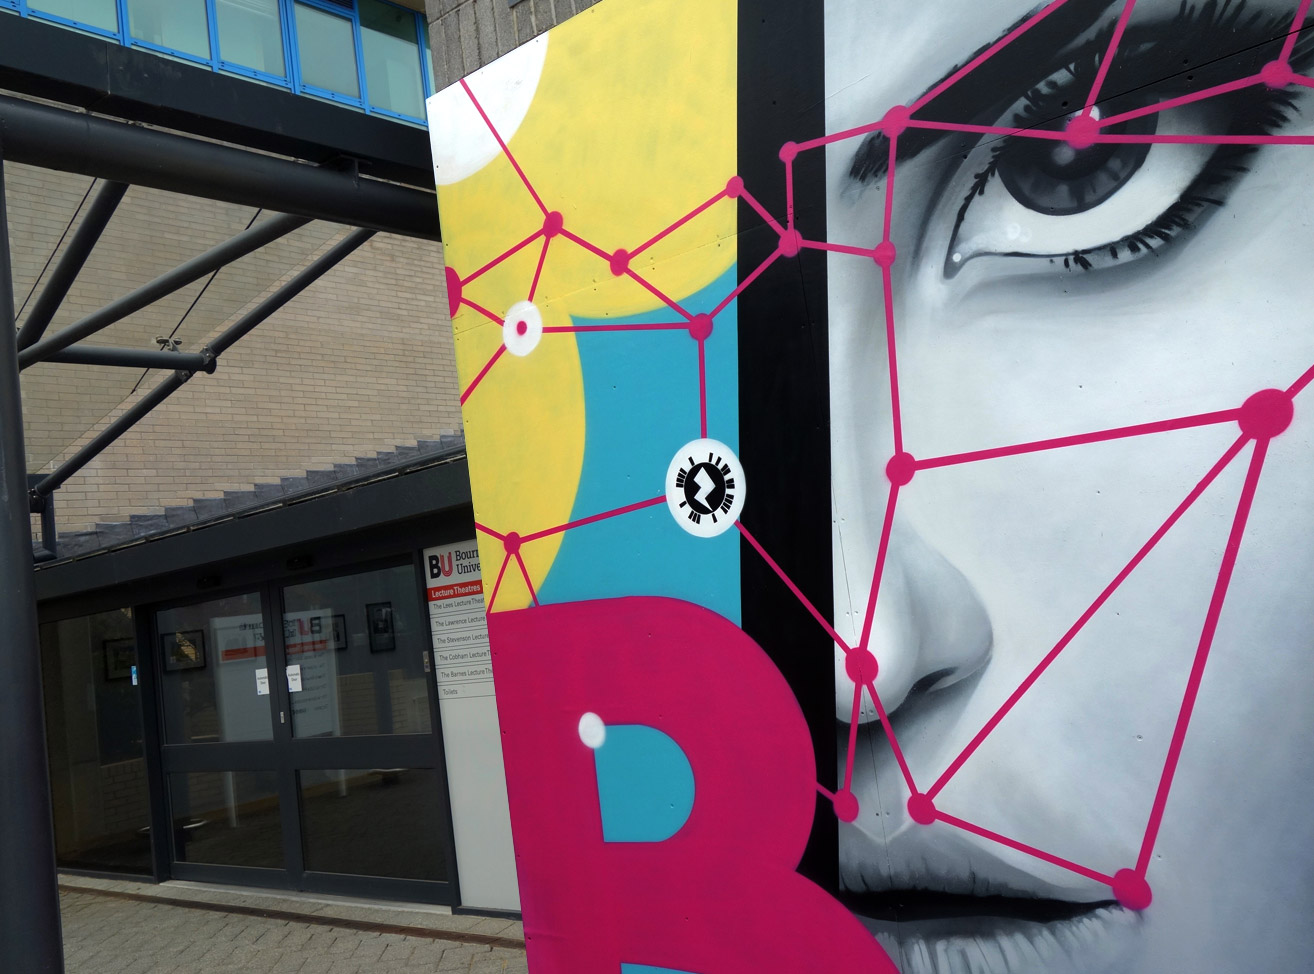 BOURNEMOUTH UNIVERSITY FUSION BUILDING EXTERIOR STREET ART GRAFFIITI MURAL & DESIGN PAINTSHOP STUDIO